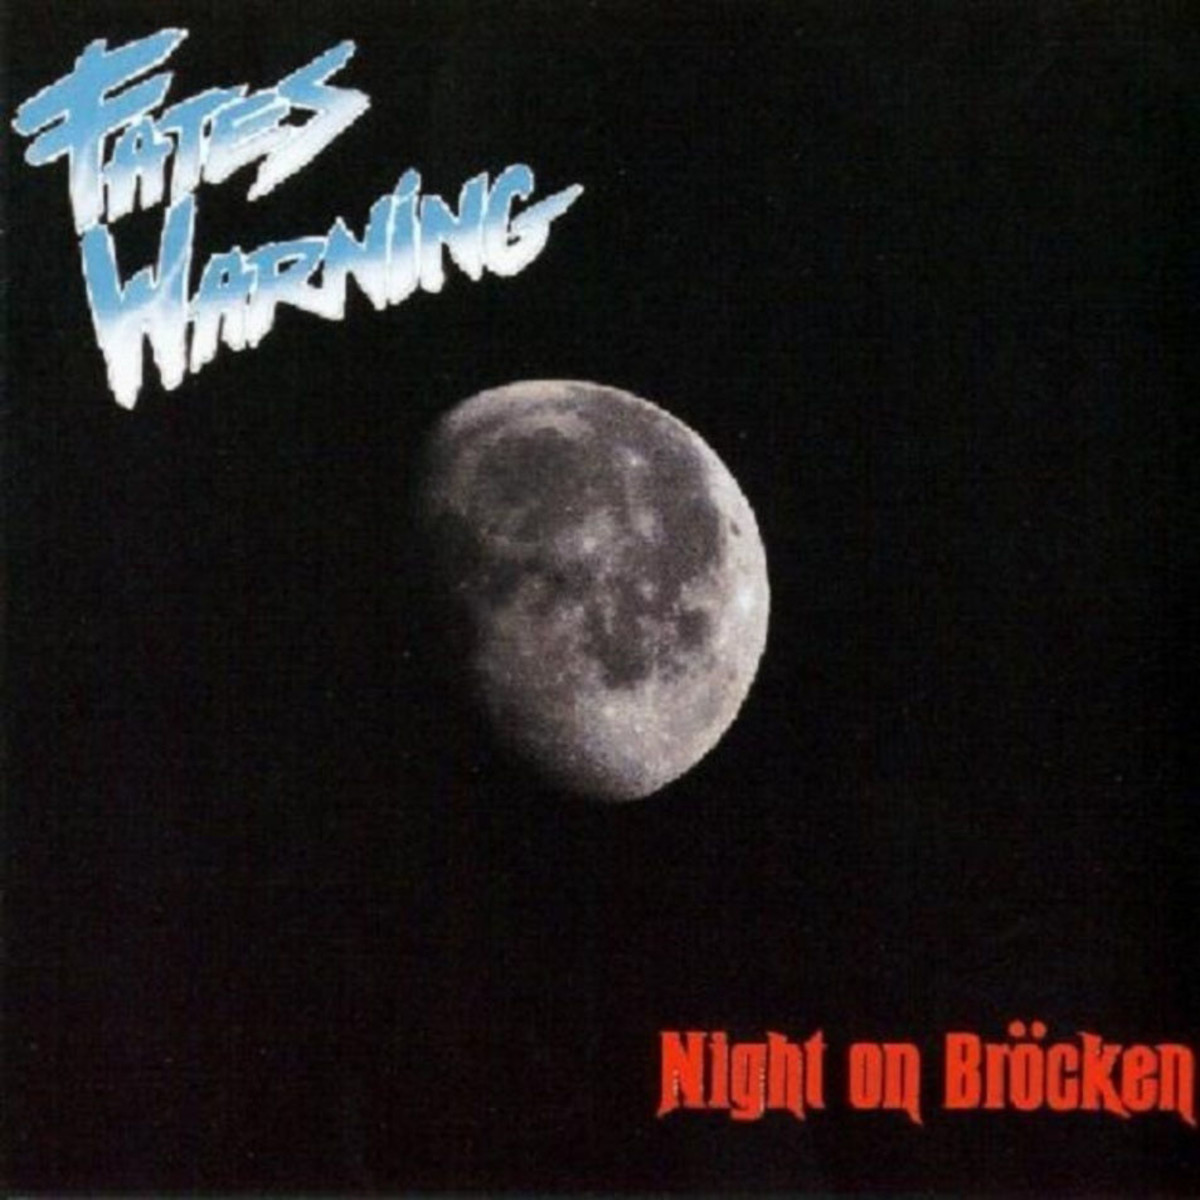 Night on Brocken the debut album by US Progressive metal band Fates Warning